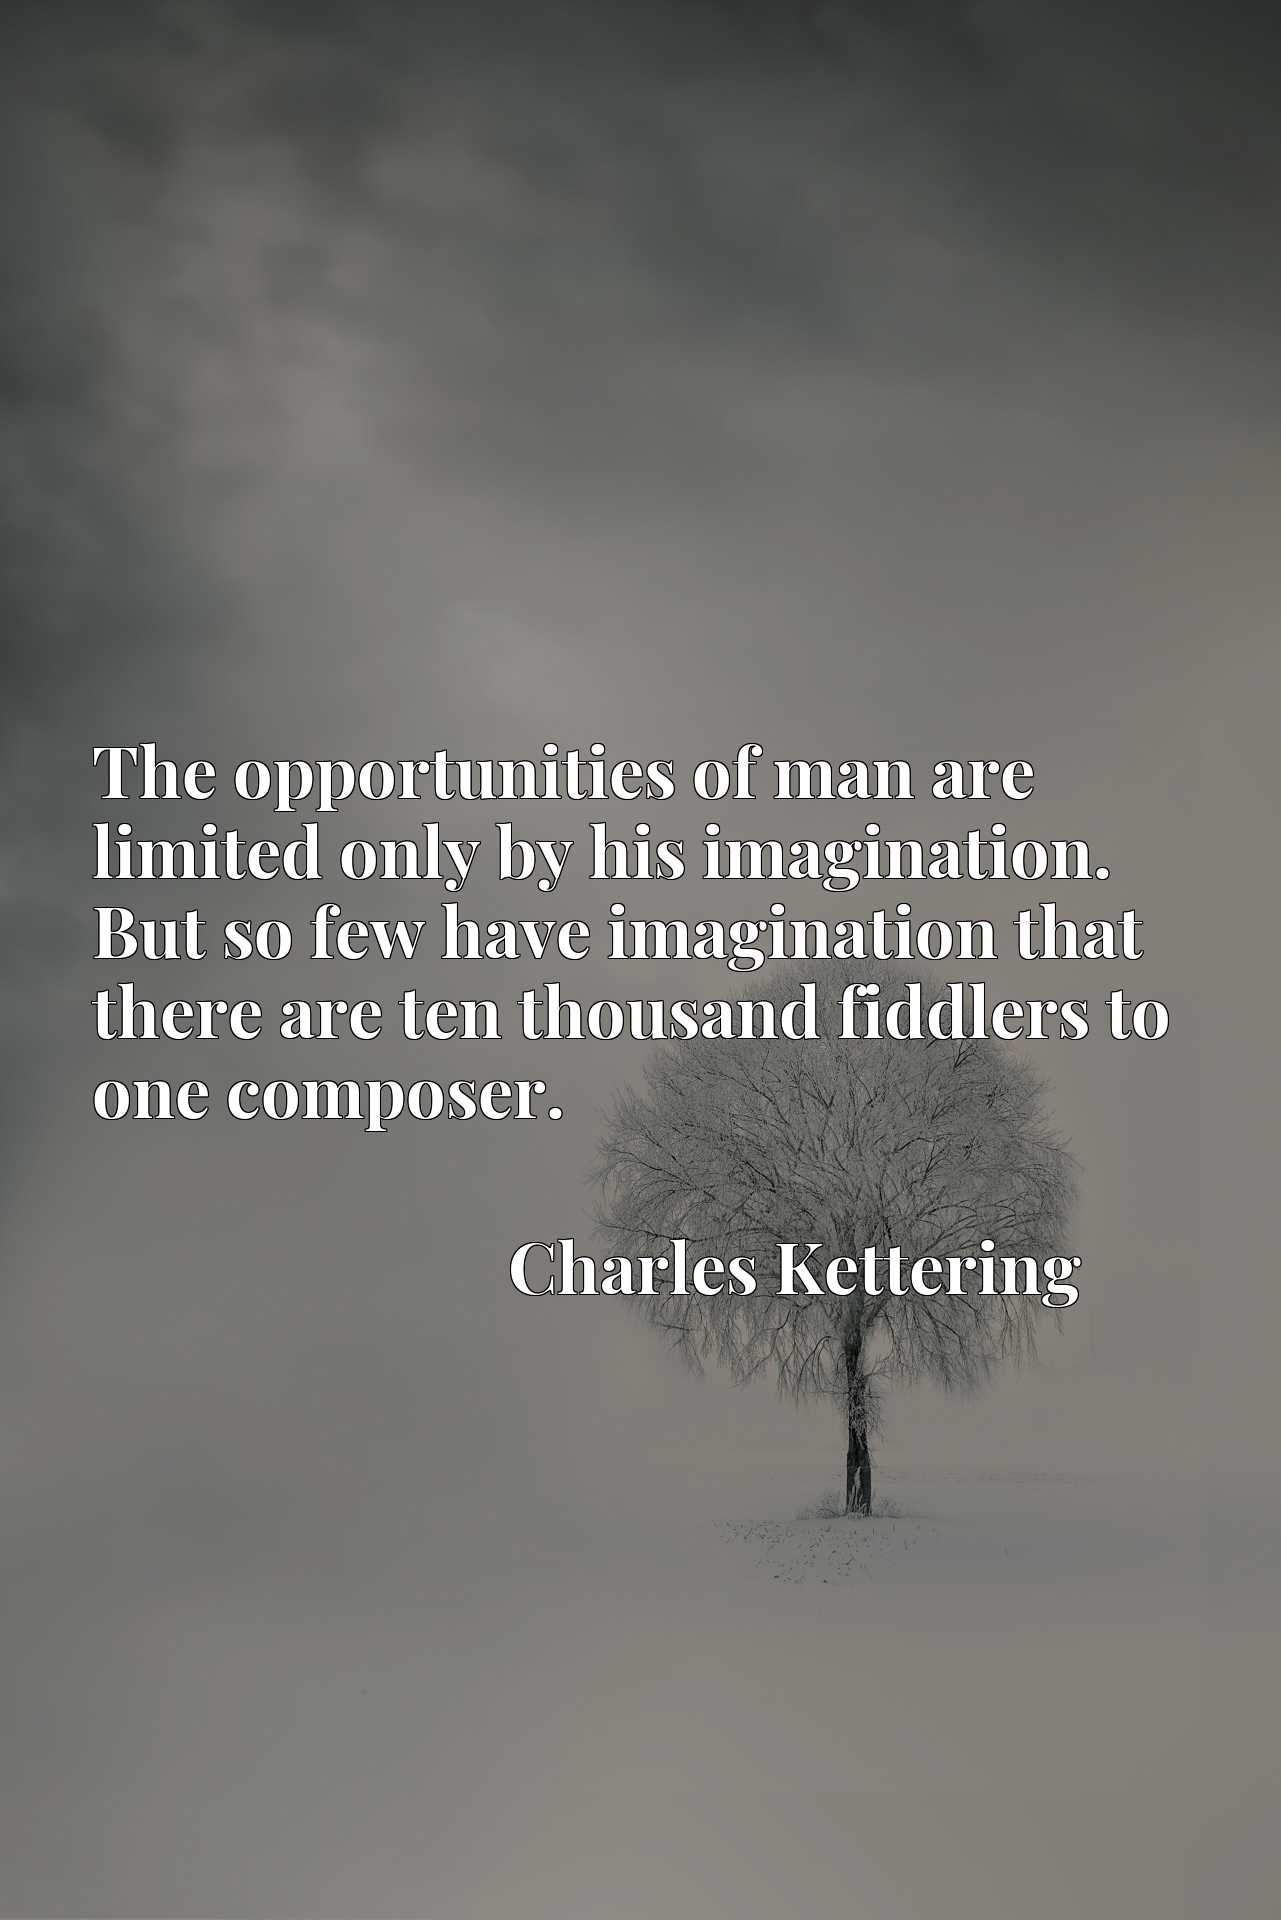 Quote Picture :The opportunities of man are limited only by his imagination. But so few have imagination that there are ten thousand fiddlers to one composer.